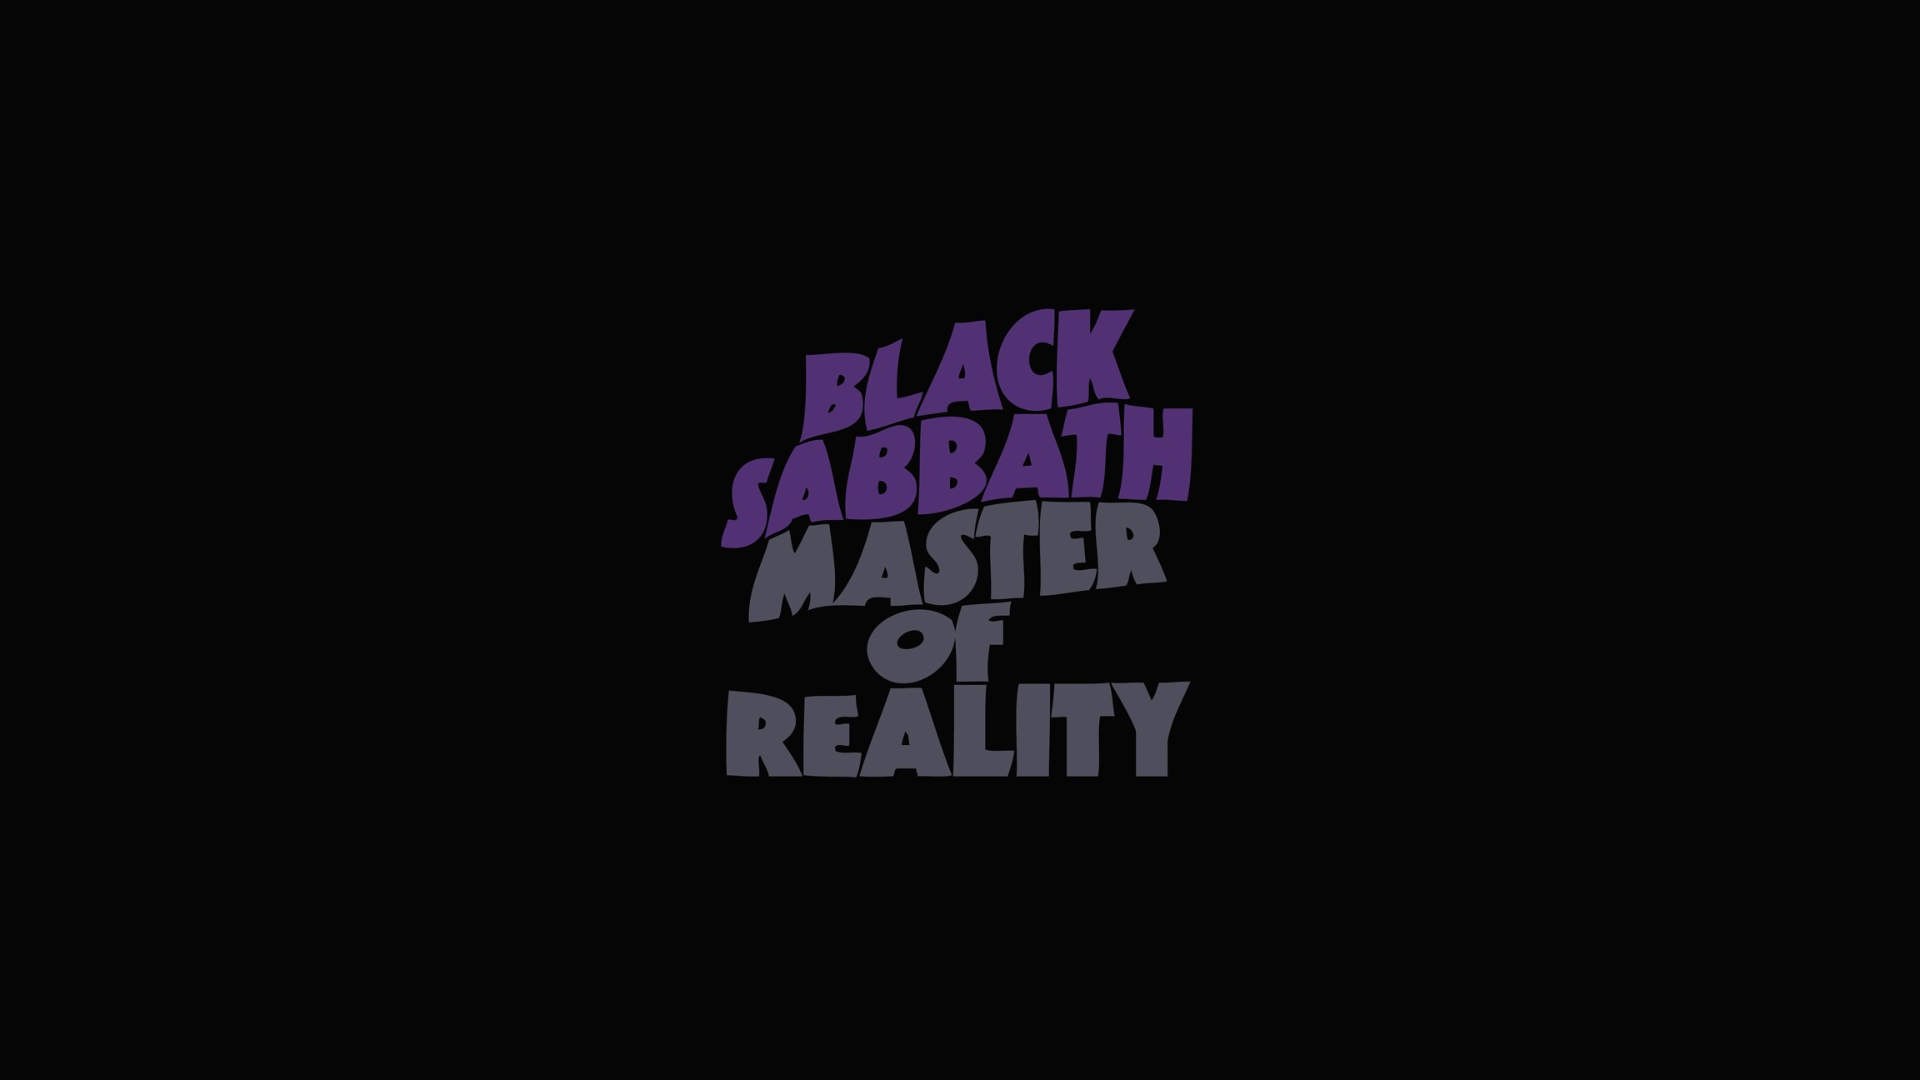 . PlusPng.com Black Sabbath Vol 4 Wallpaper For Desktop Master Of Reality Wallpaper  For Computer Background PlusPng.com  - Black Sabbath 1986 Logo PNG